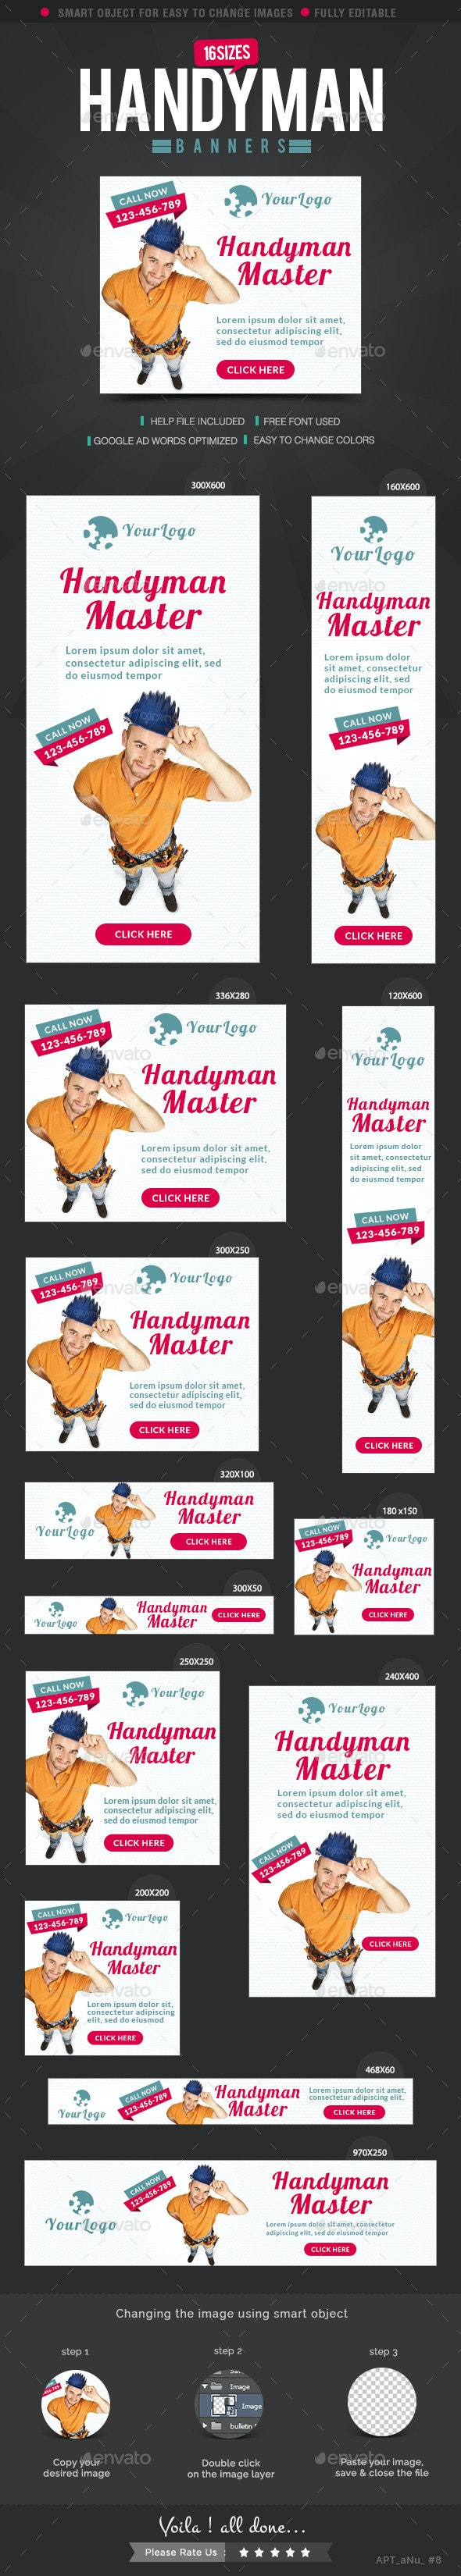 Handyman Service Banners - Banners & Ads Web Elements